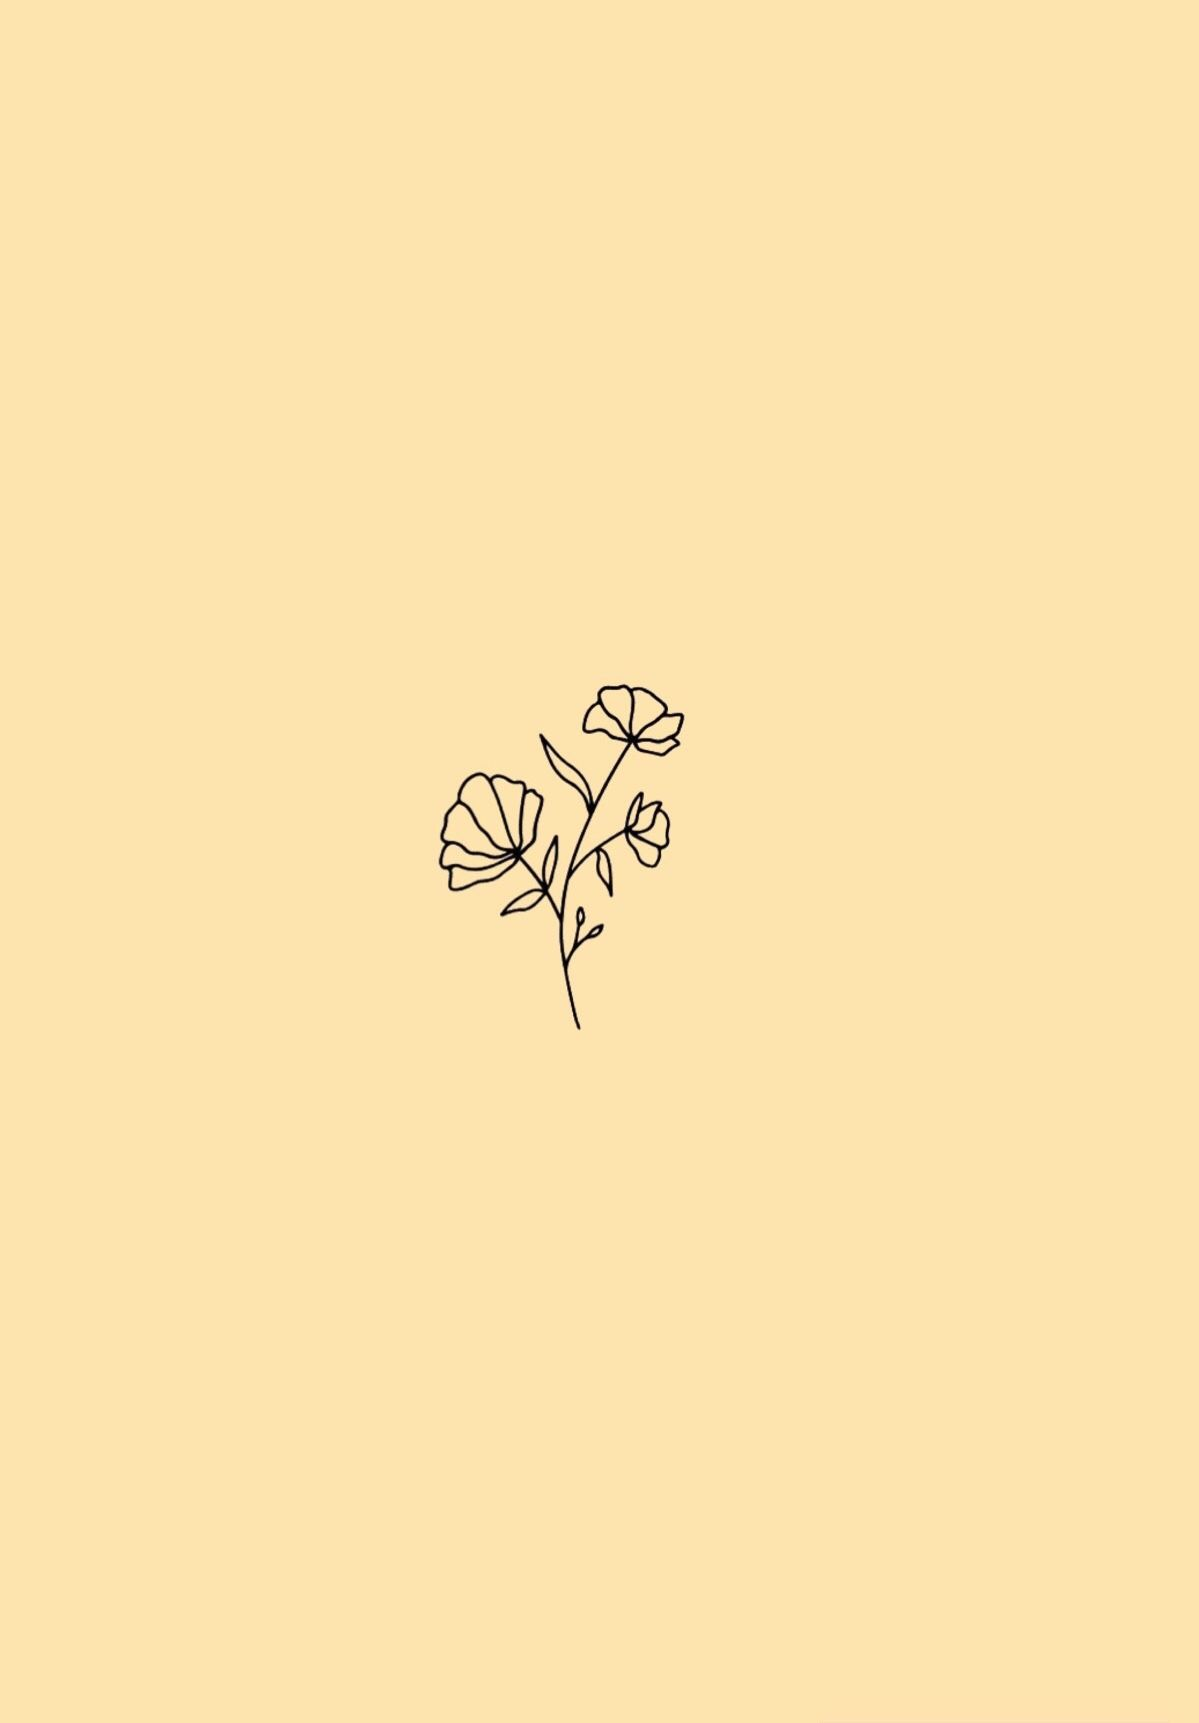 Minimalist Flower Wallpaper Pastel Yellow Background Iphone